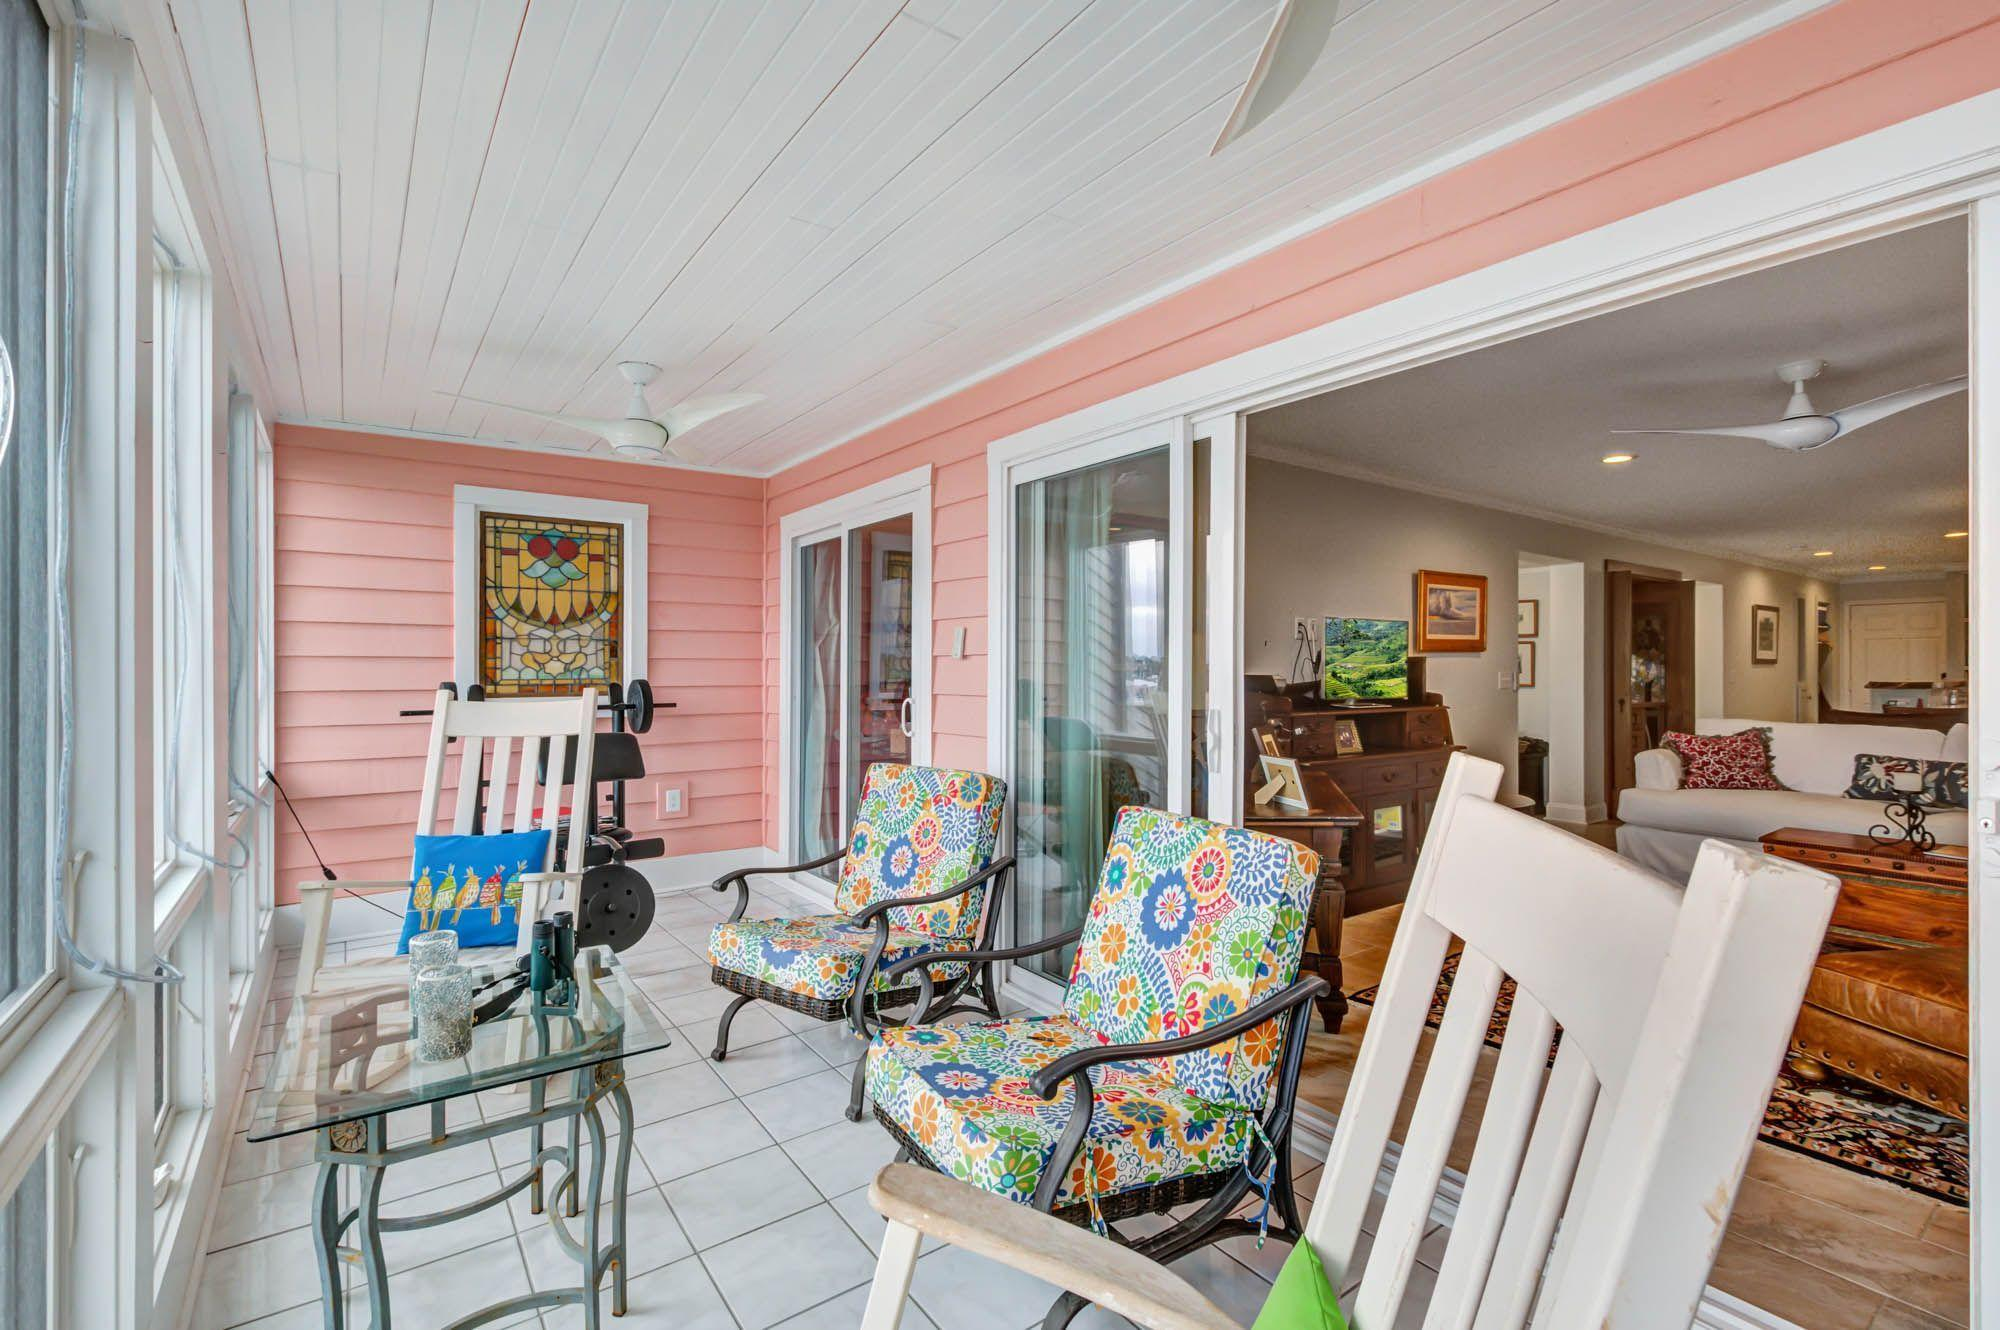 Mariners Cay Homes For Sale - 43 Mariners Cay, Folly Beach, SC - 28